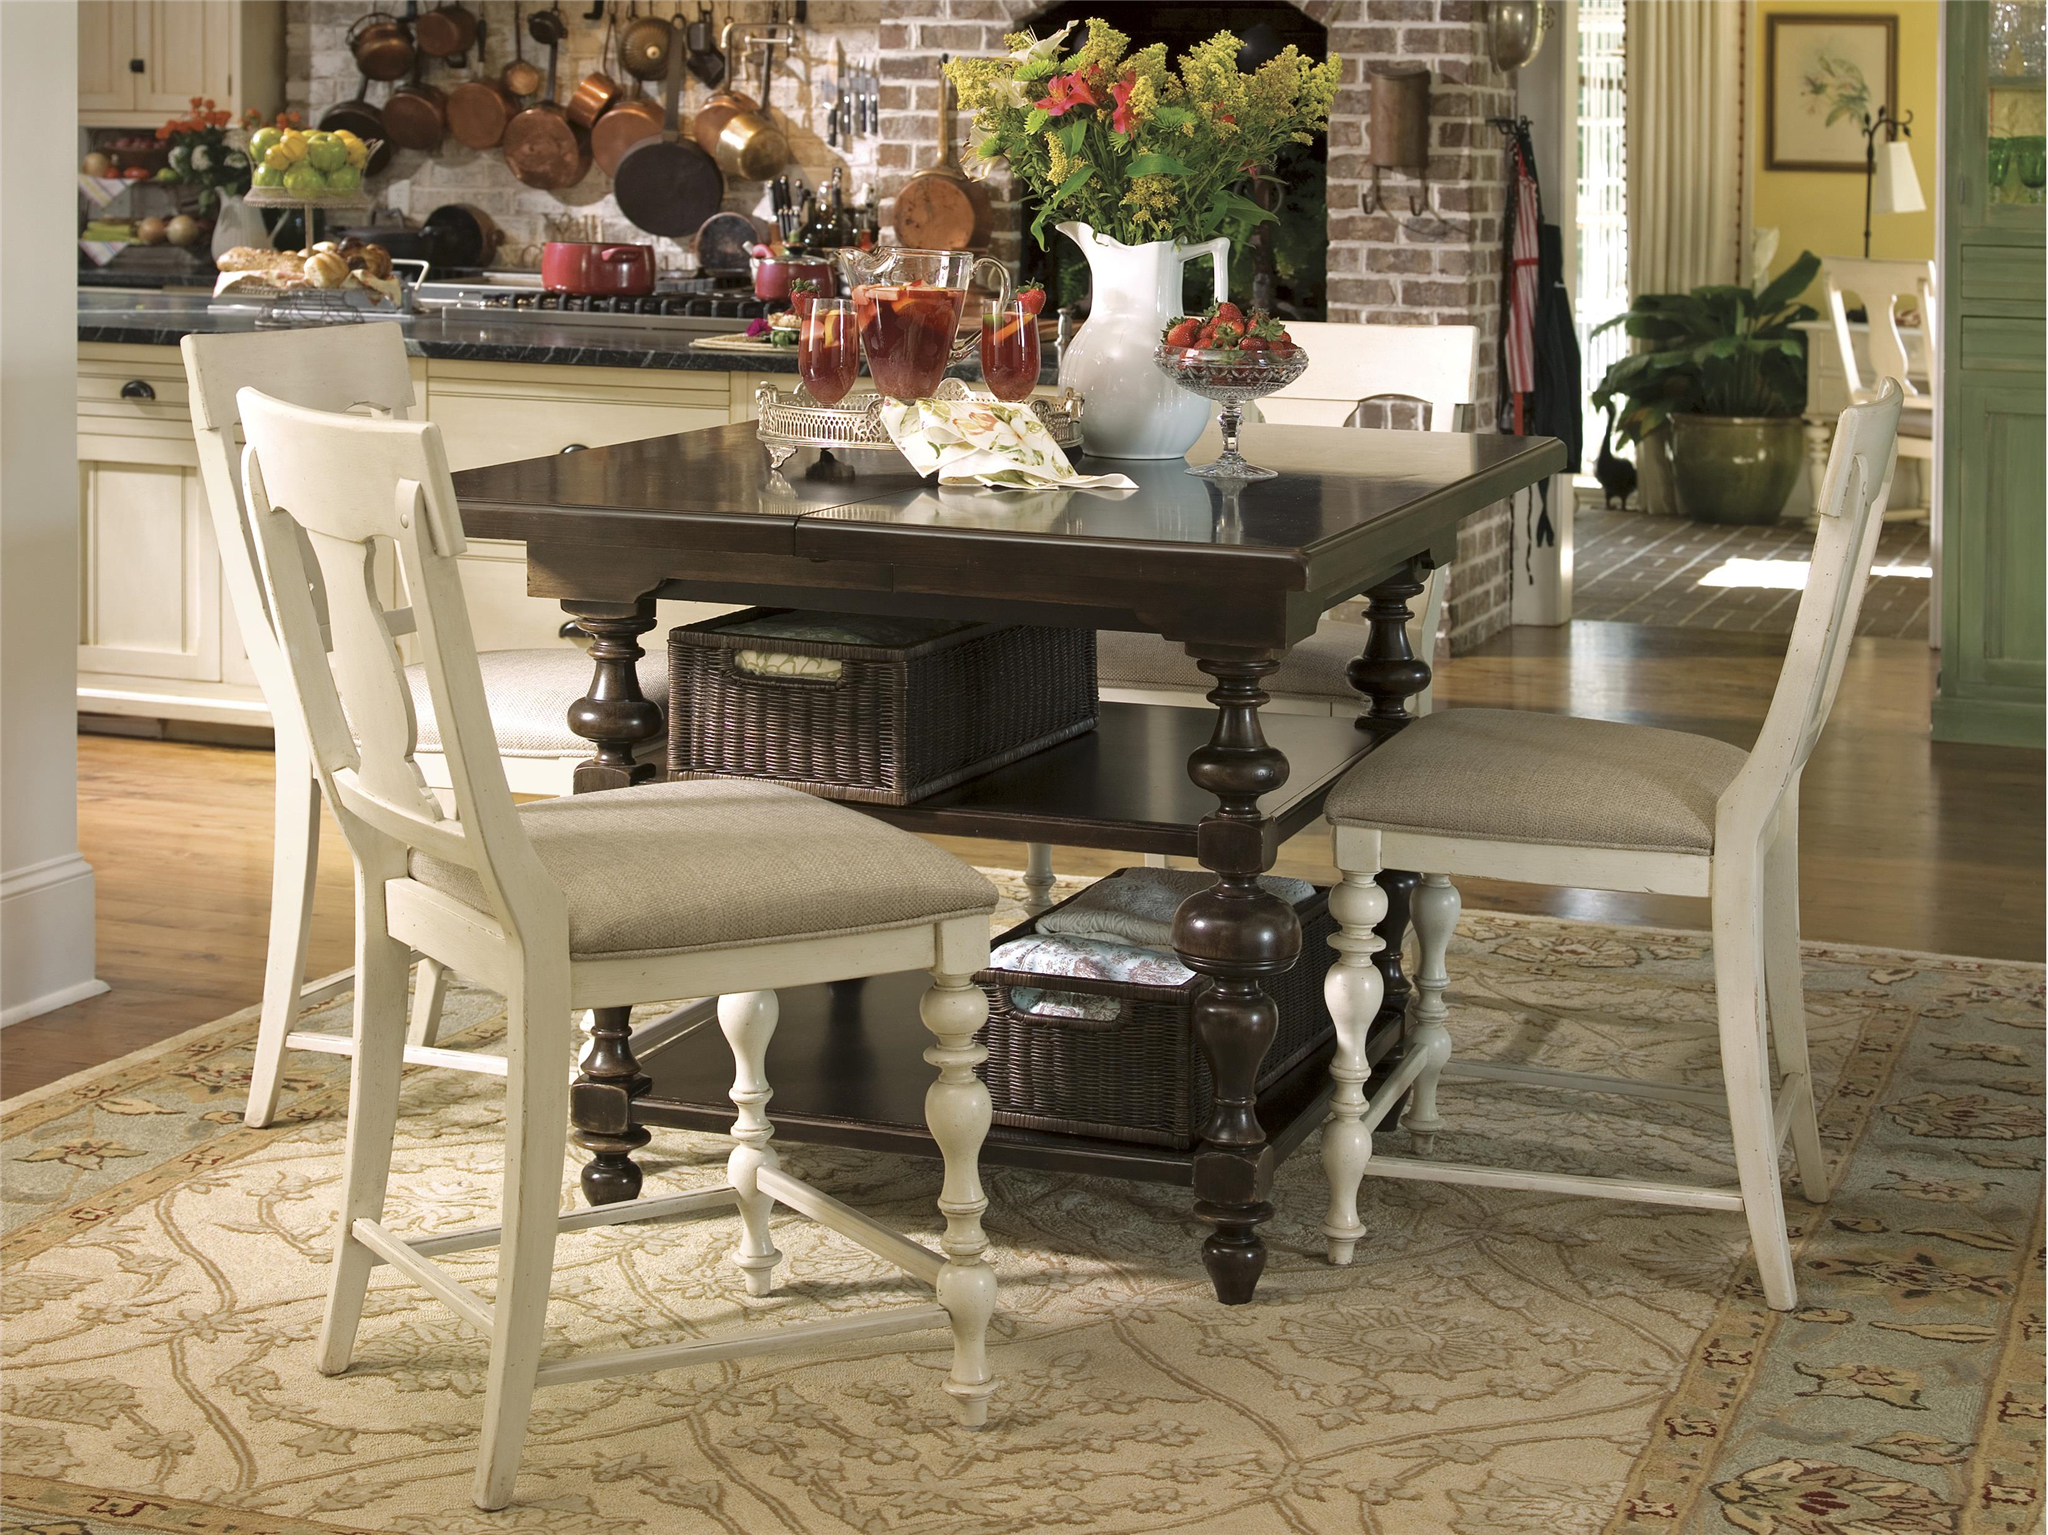 paula deen table and chairs reclining massage chair universal furniture home counter height